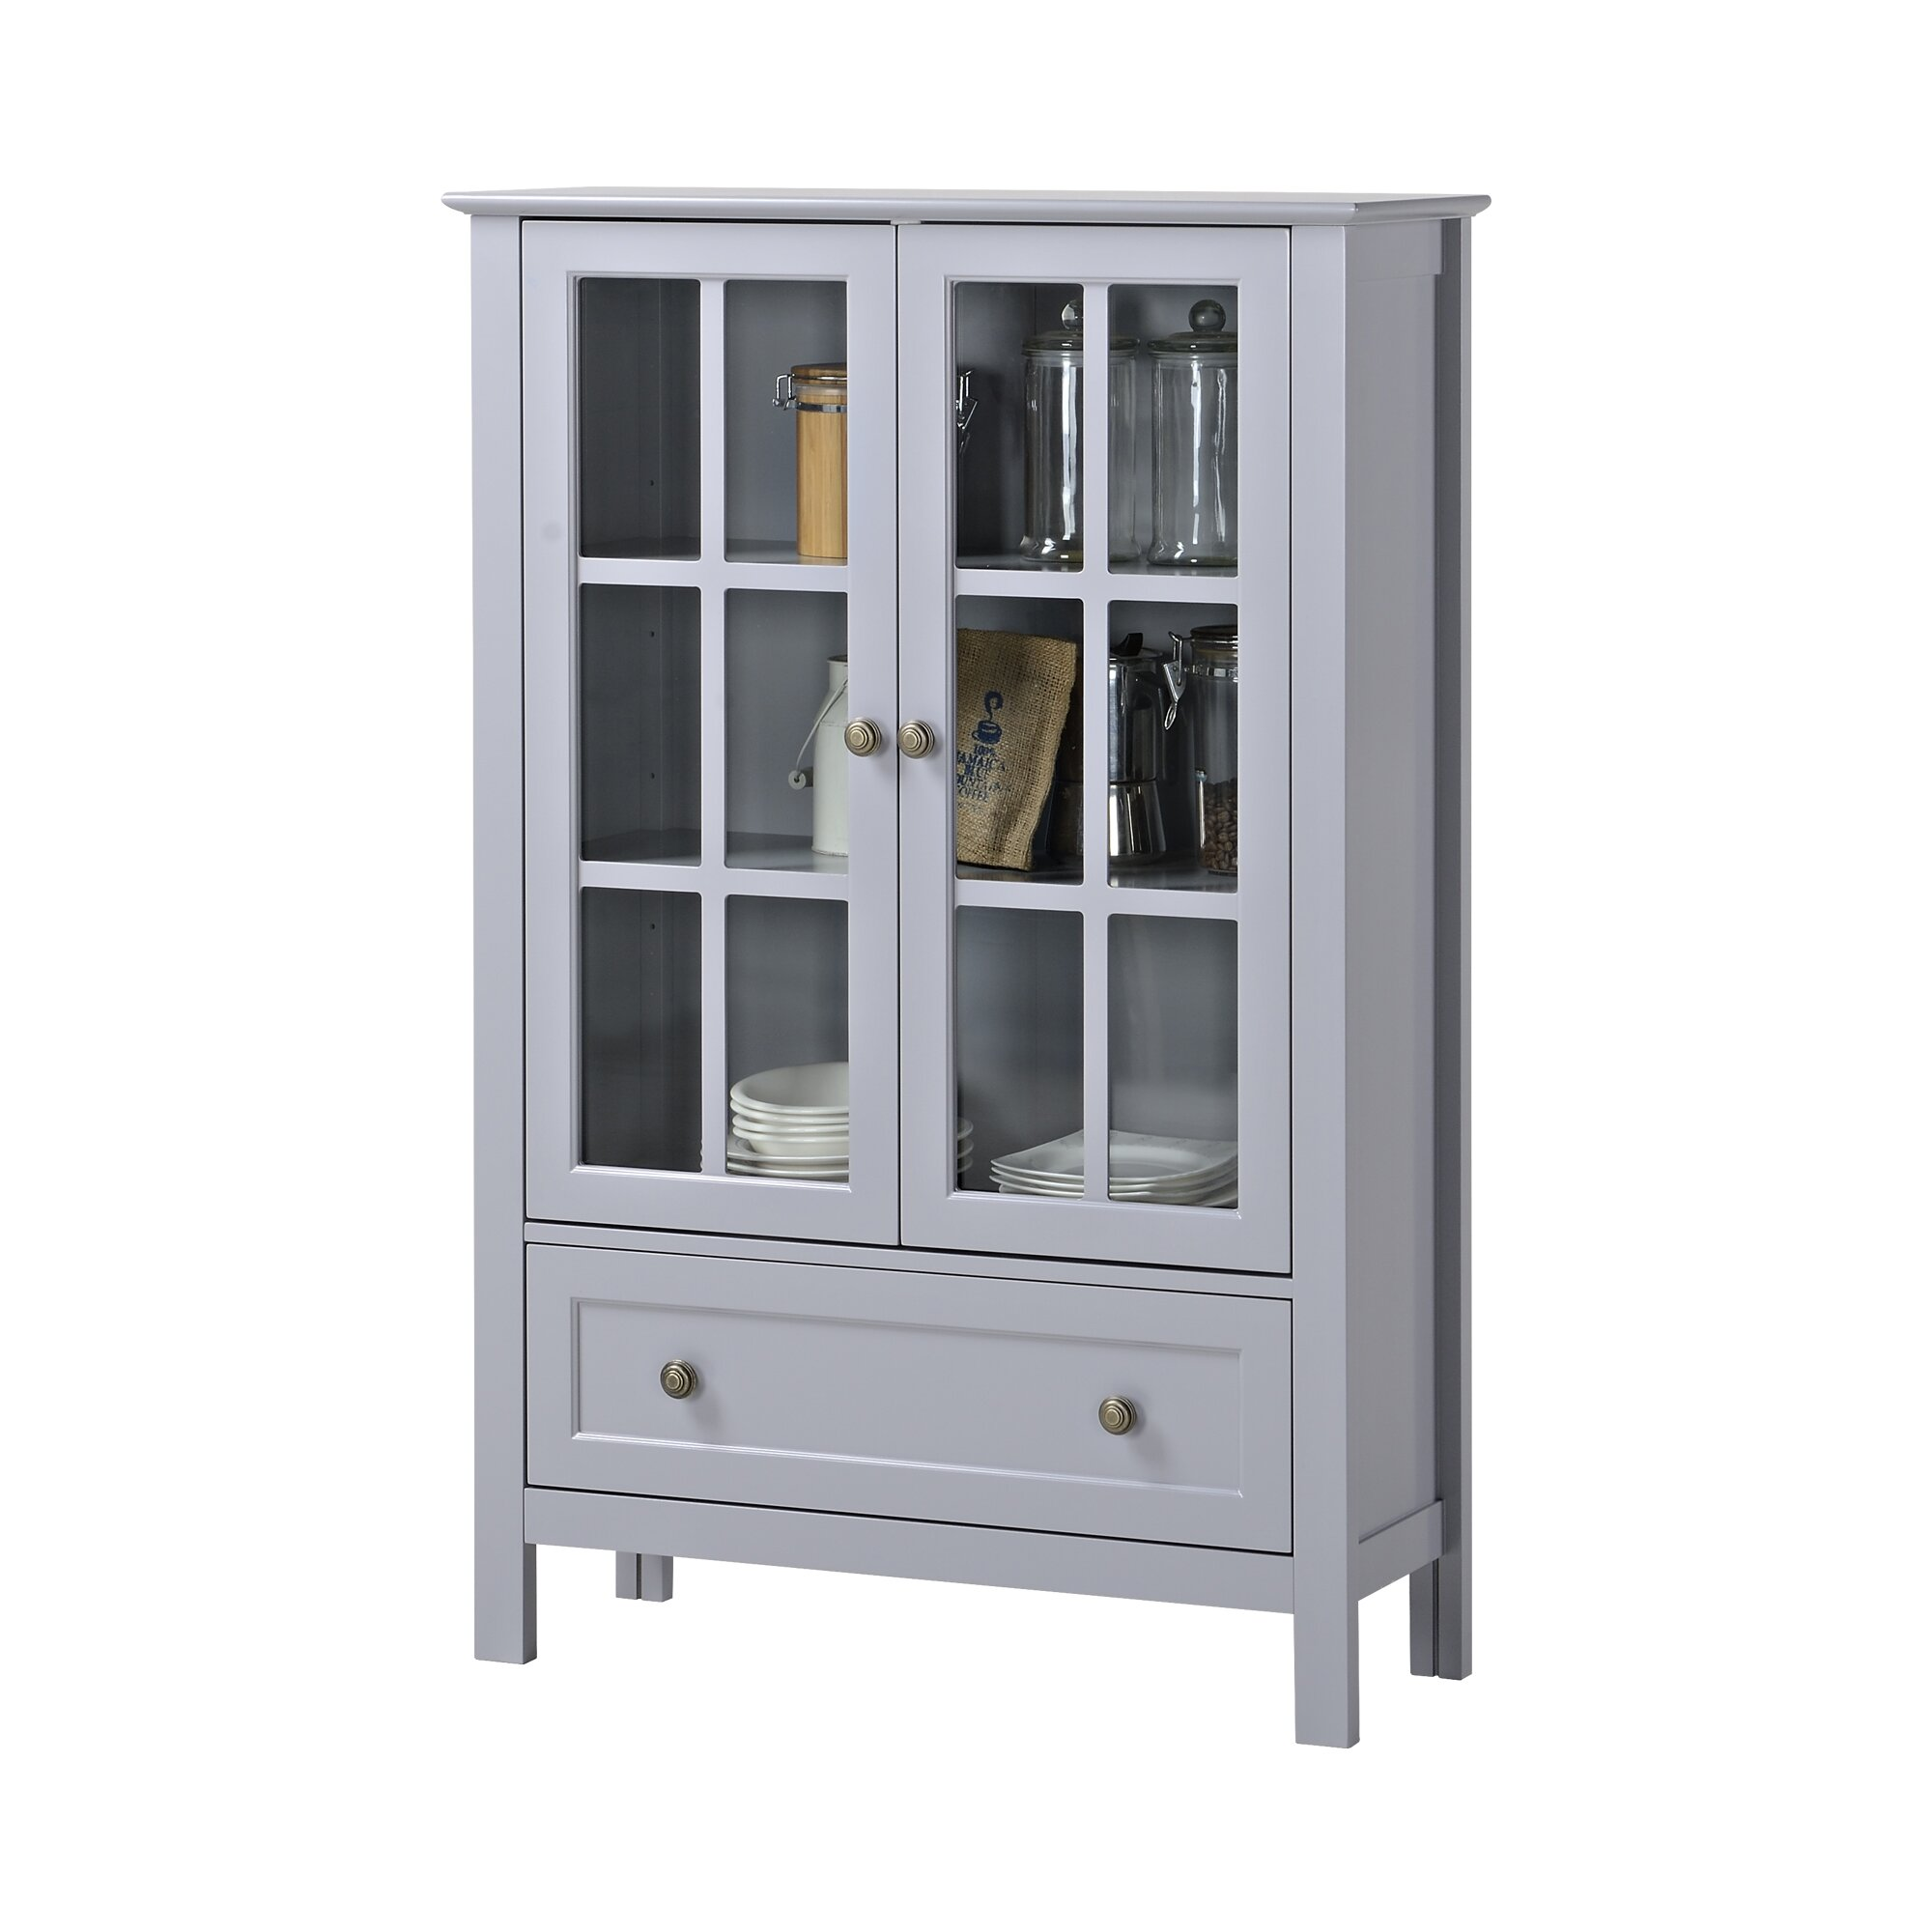 Homestar tall cabinet reviews wayfair for 1 door storage cabinet